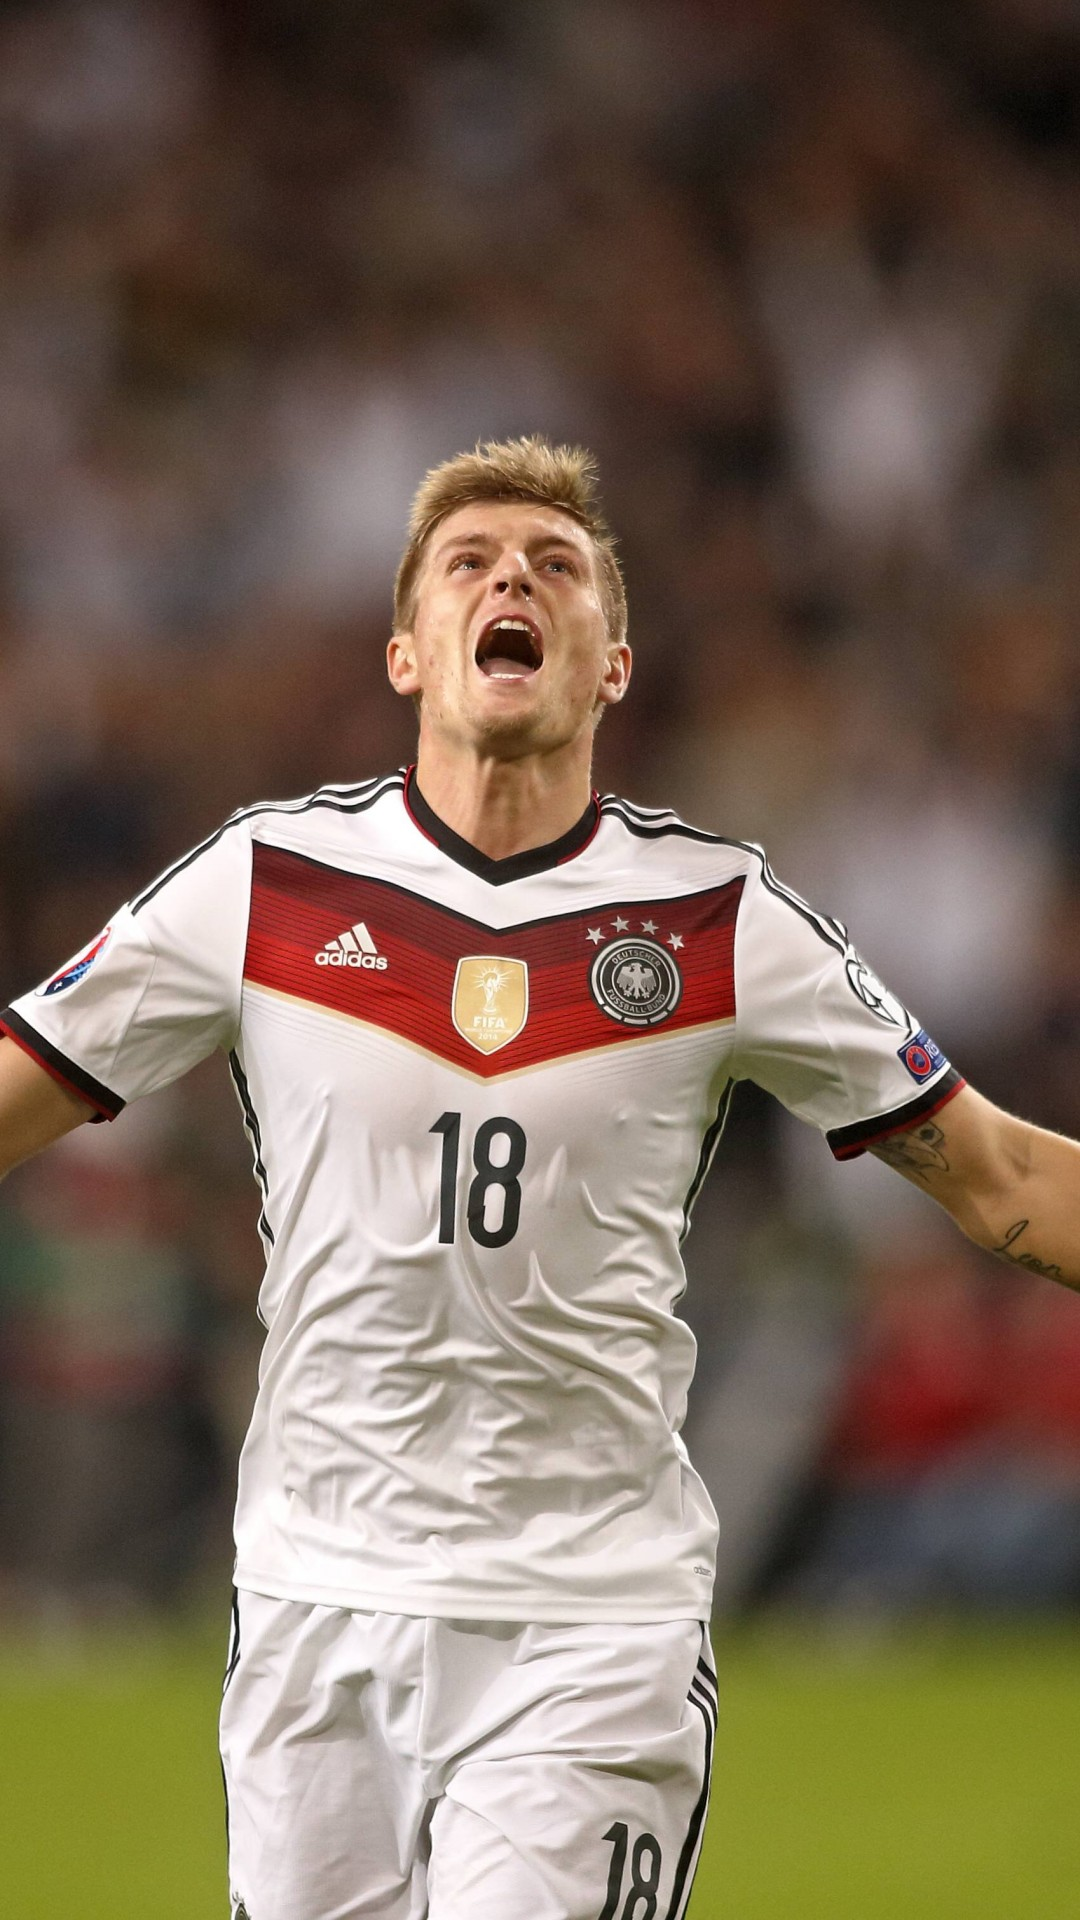 The Best Of The Worst: Wallpaper Football, Toni Kroos, Soccer, The Best Players